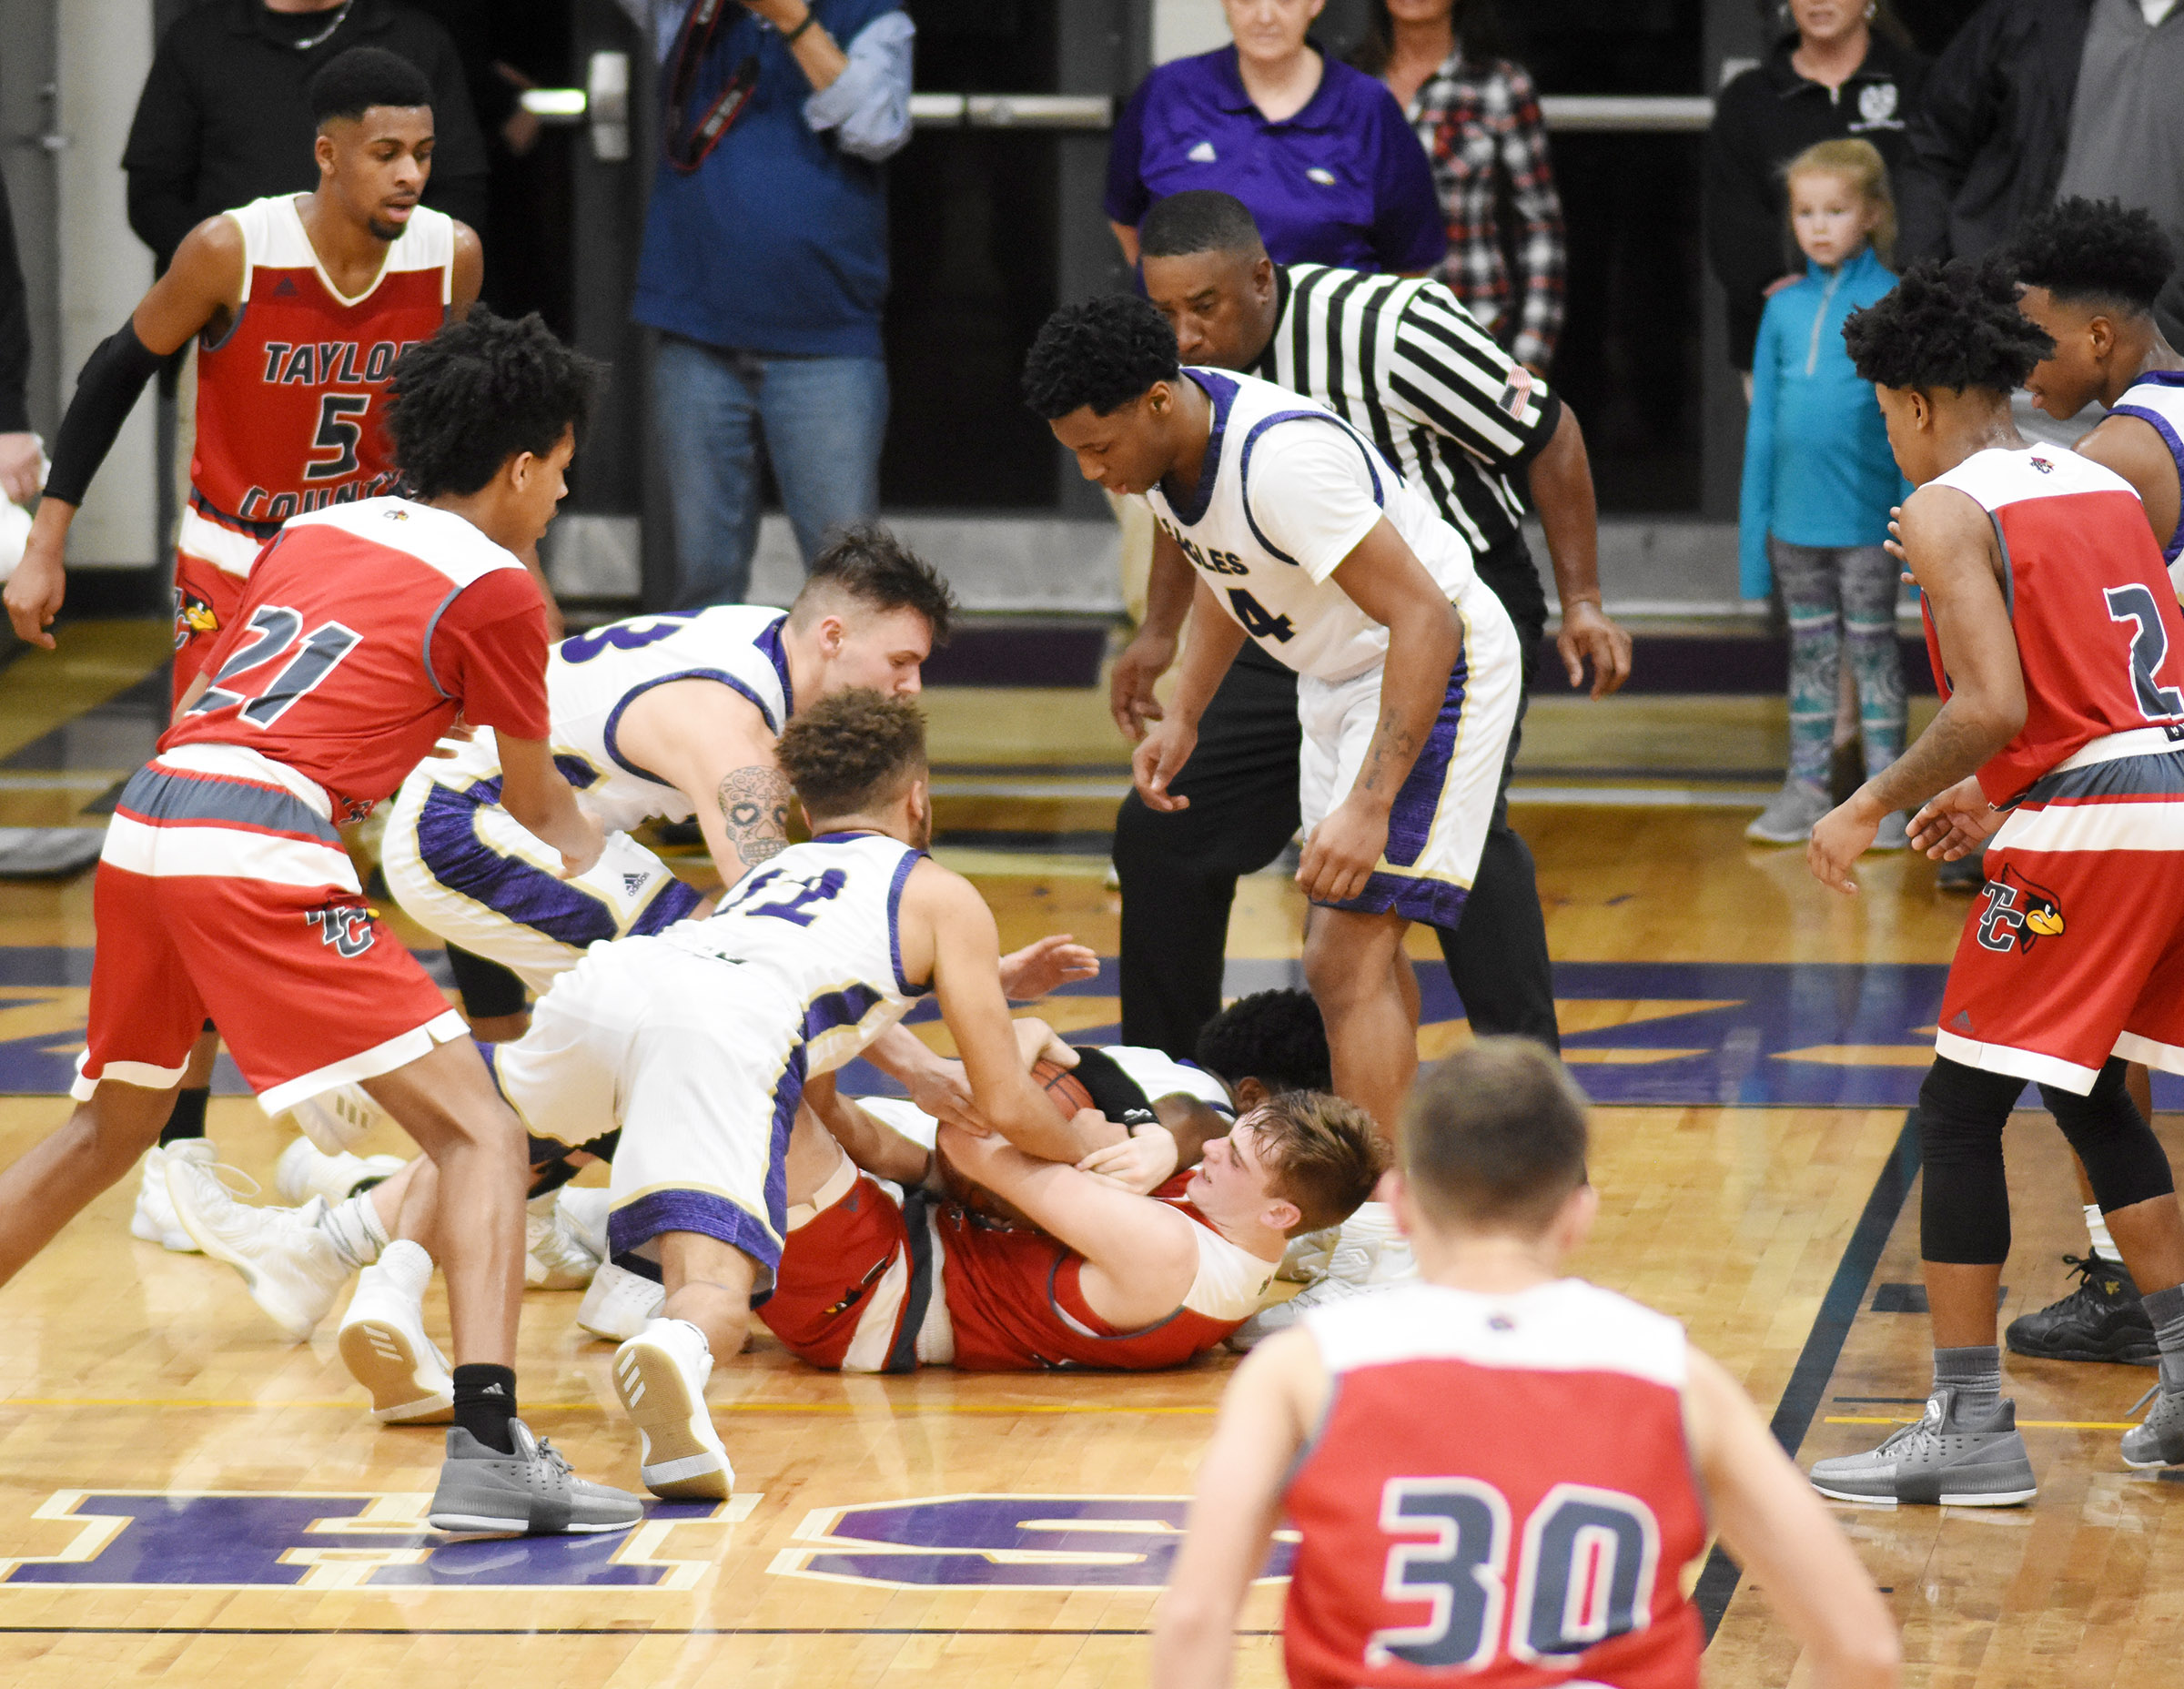 From left, CHS seniors Logan Cole and Ethan Lay and junior Taj Sanders fight for the ball.